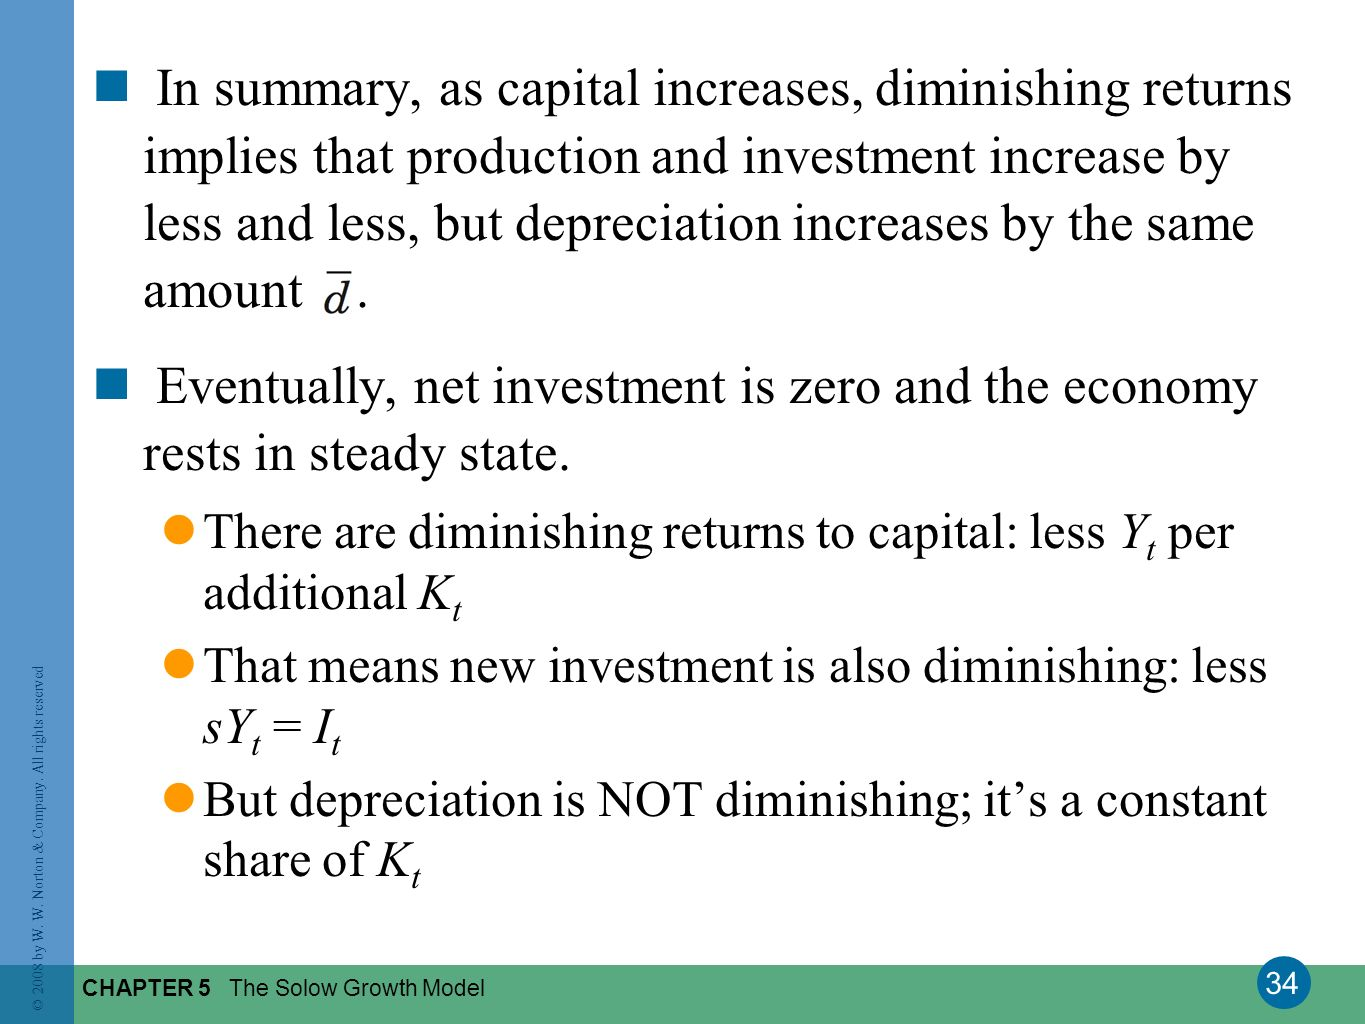 In summary, as capital increases, diminishing returns implies that production and investment increase by less and less, but depreciation increases by the same amount .